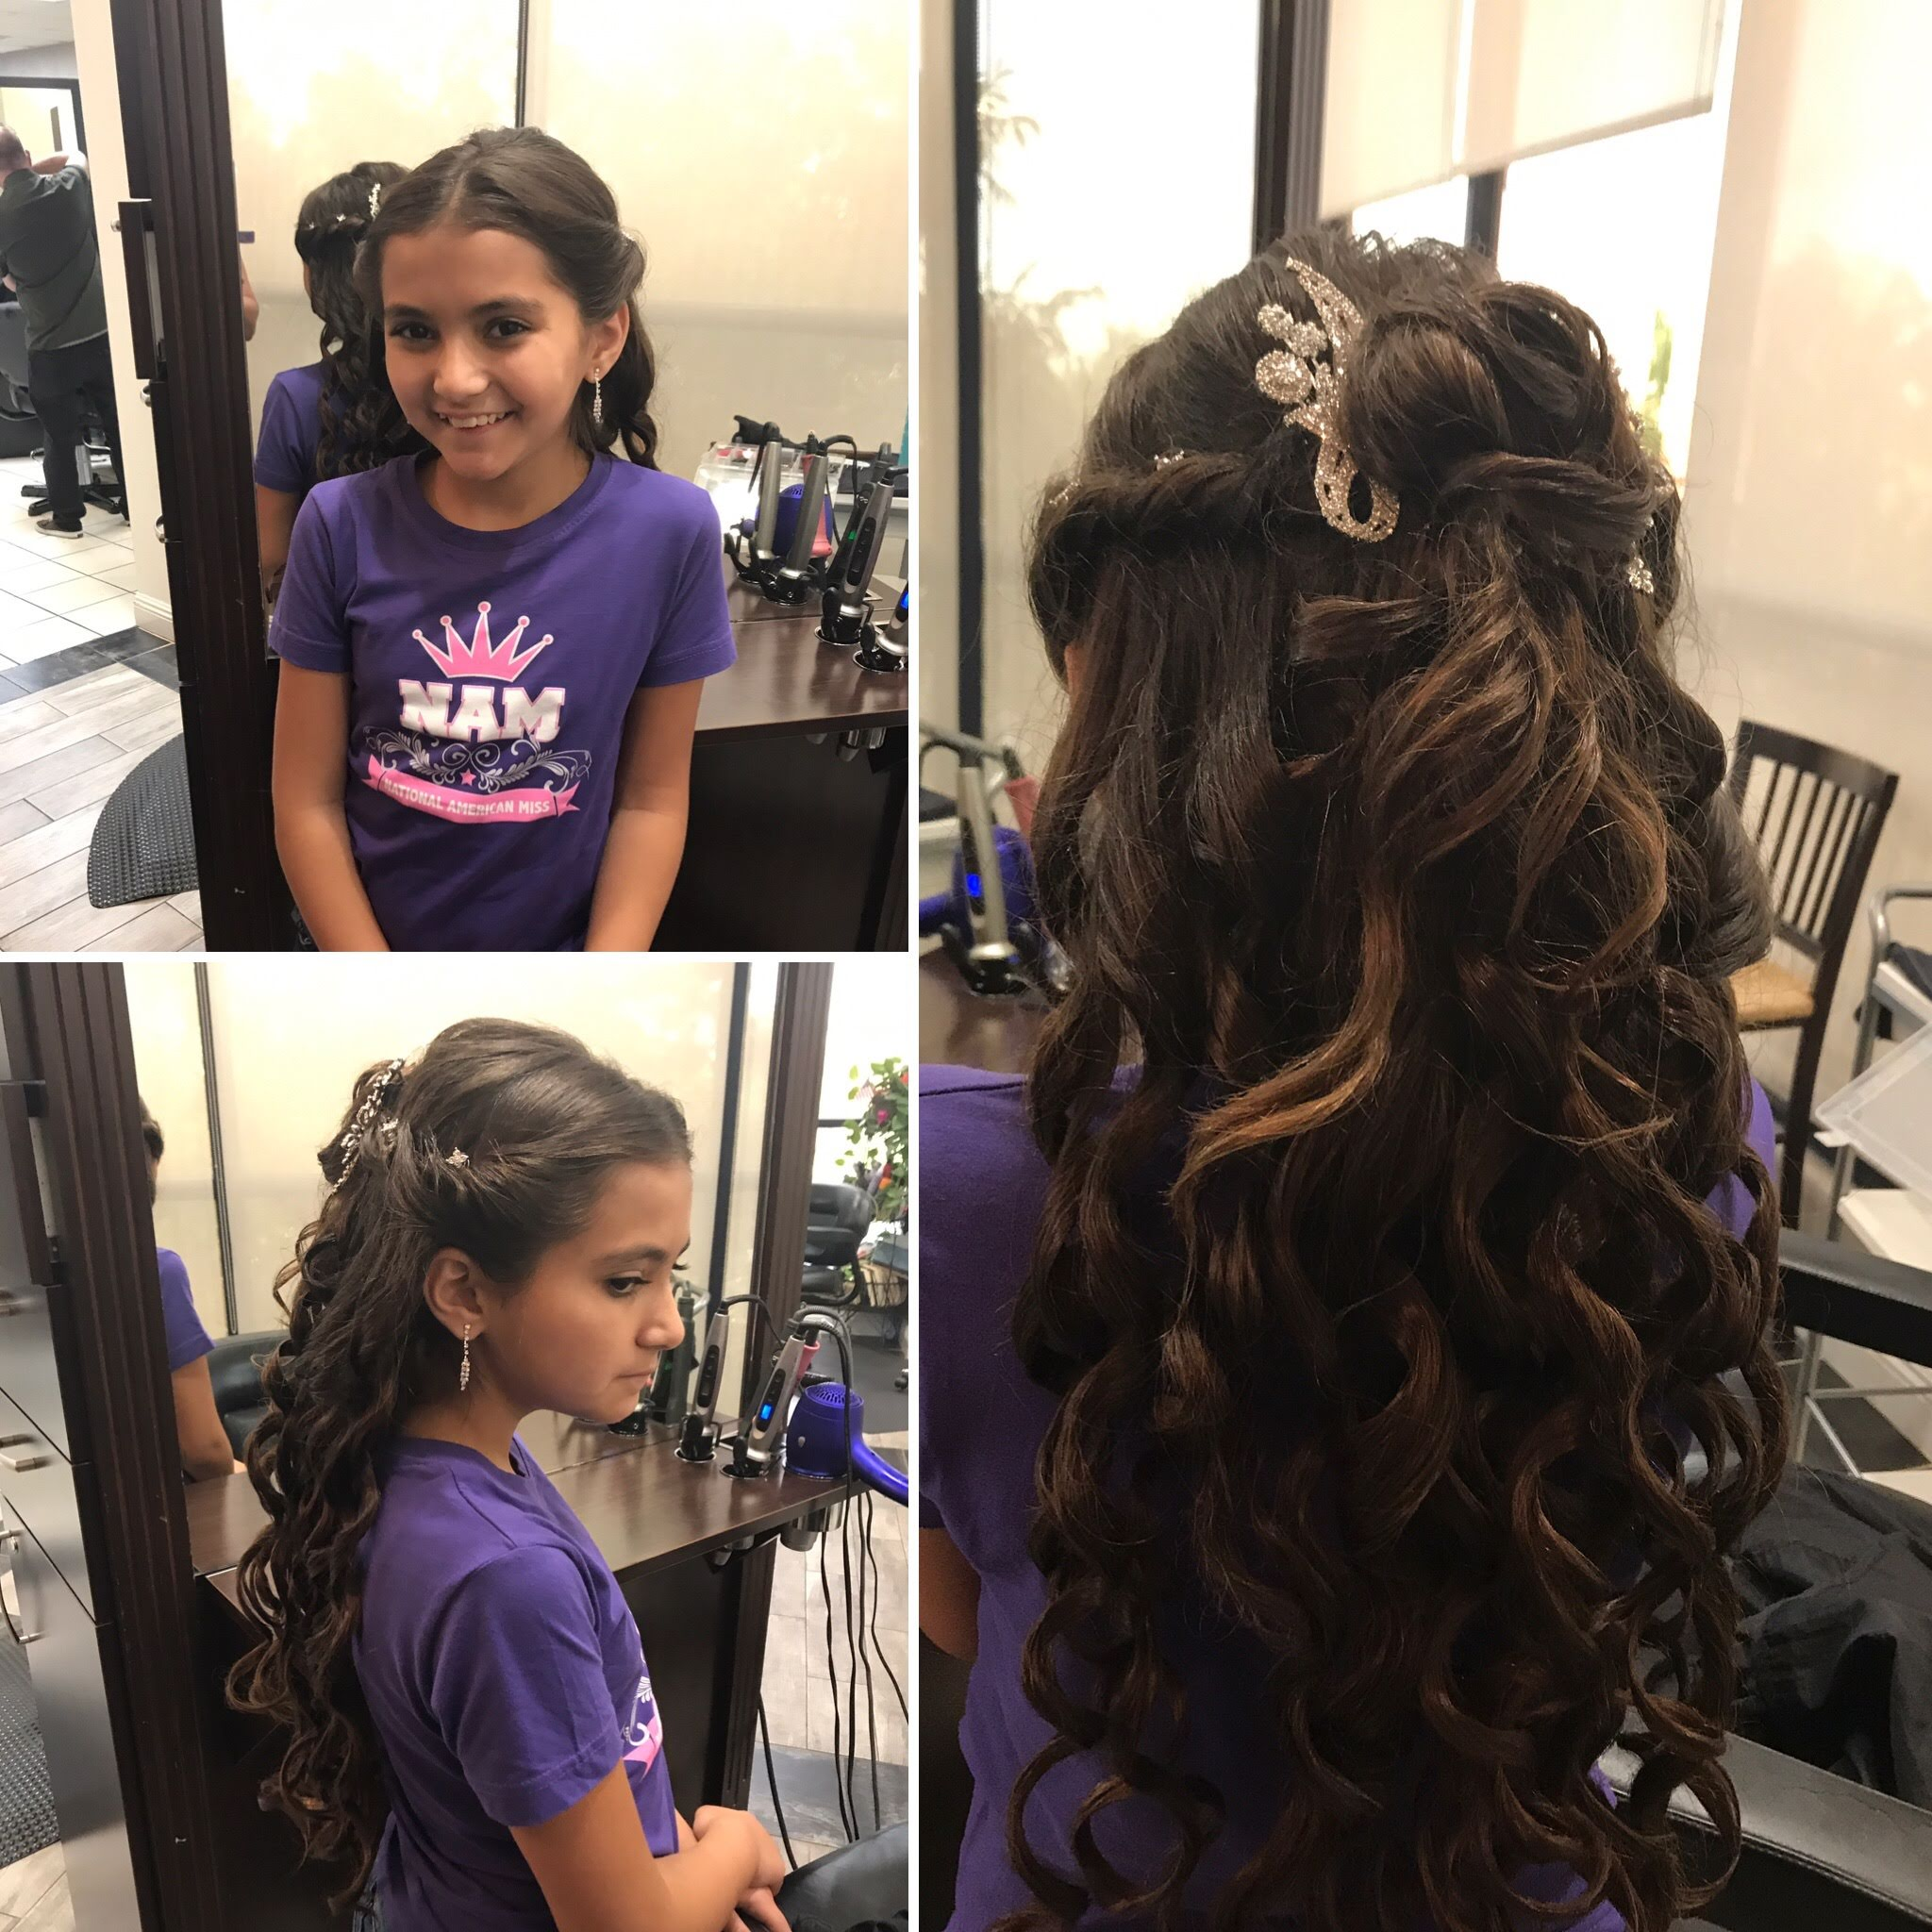 3 images of flower girl getting her hair styled and the Salon at Lakeside